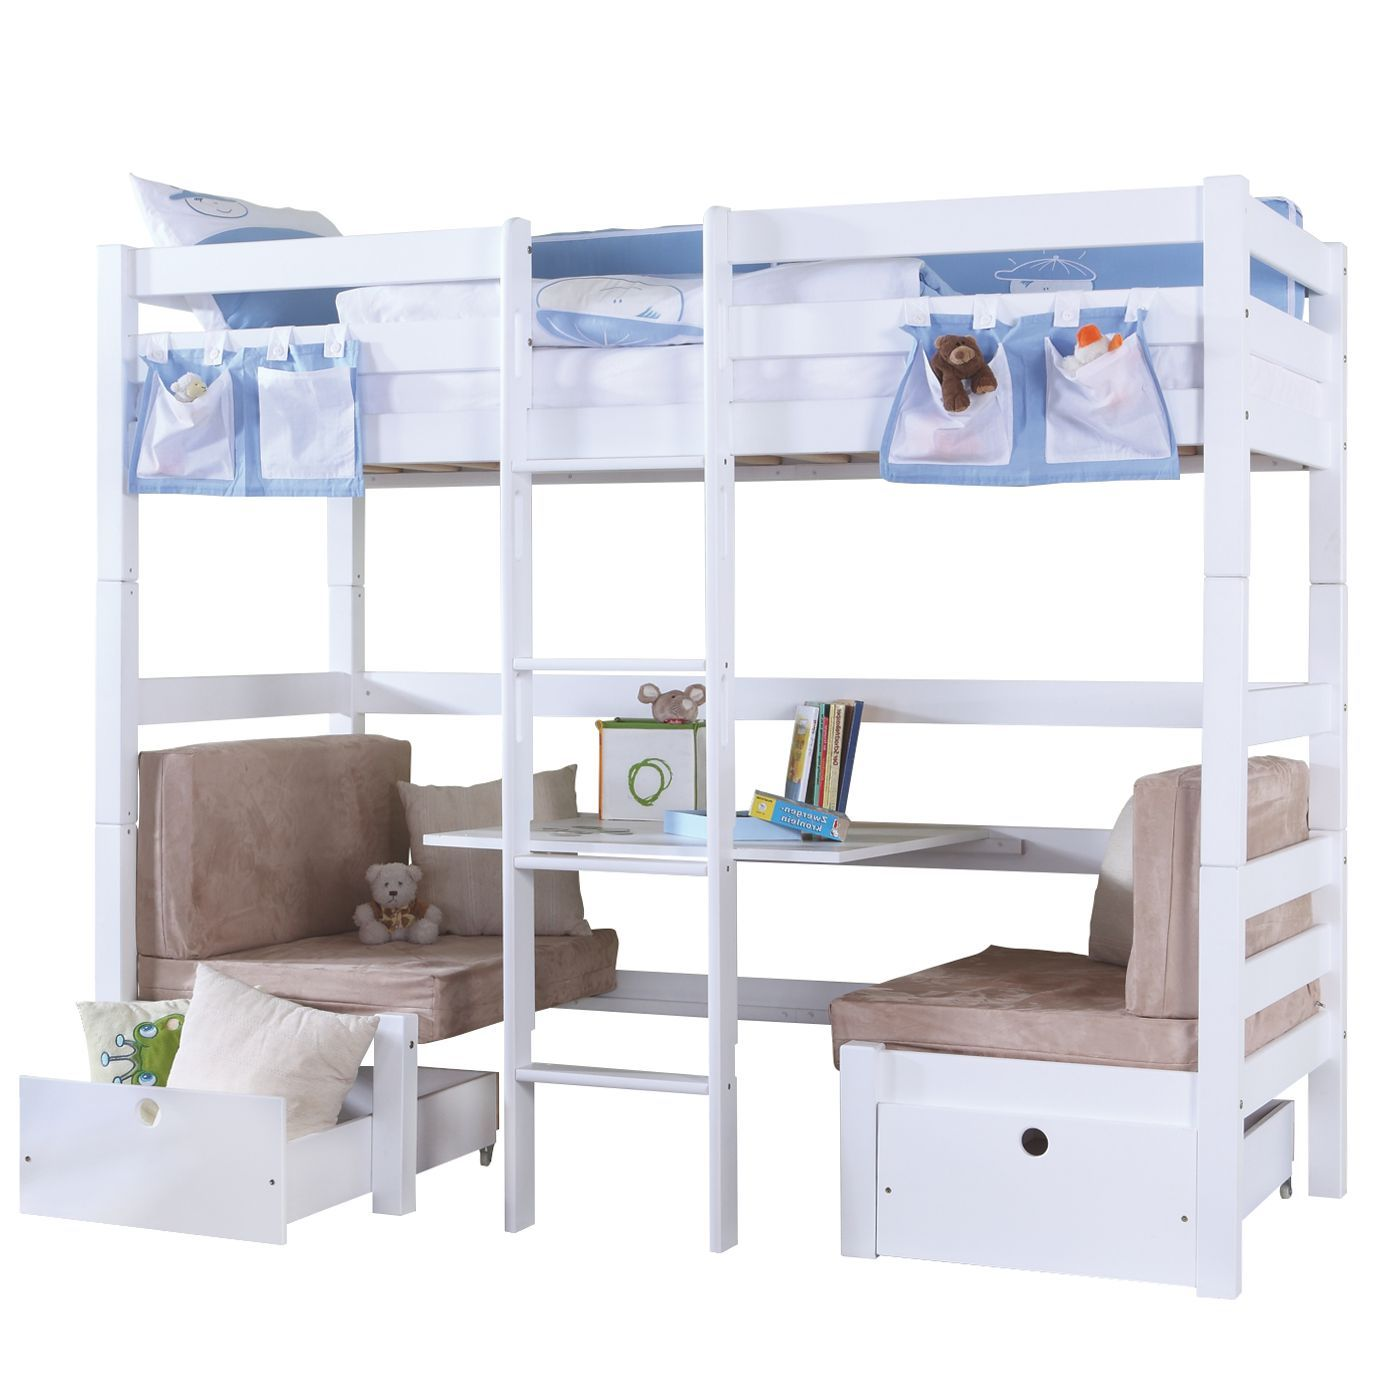 Ausziehbett Antonio Pin By Ladendirekt On Kinderbetten Etagenbett Bett Kinder Bett